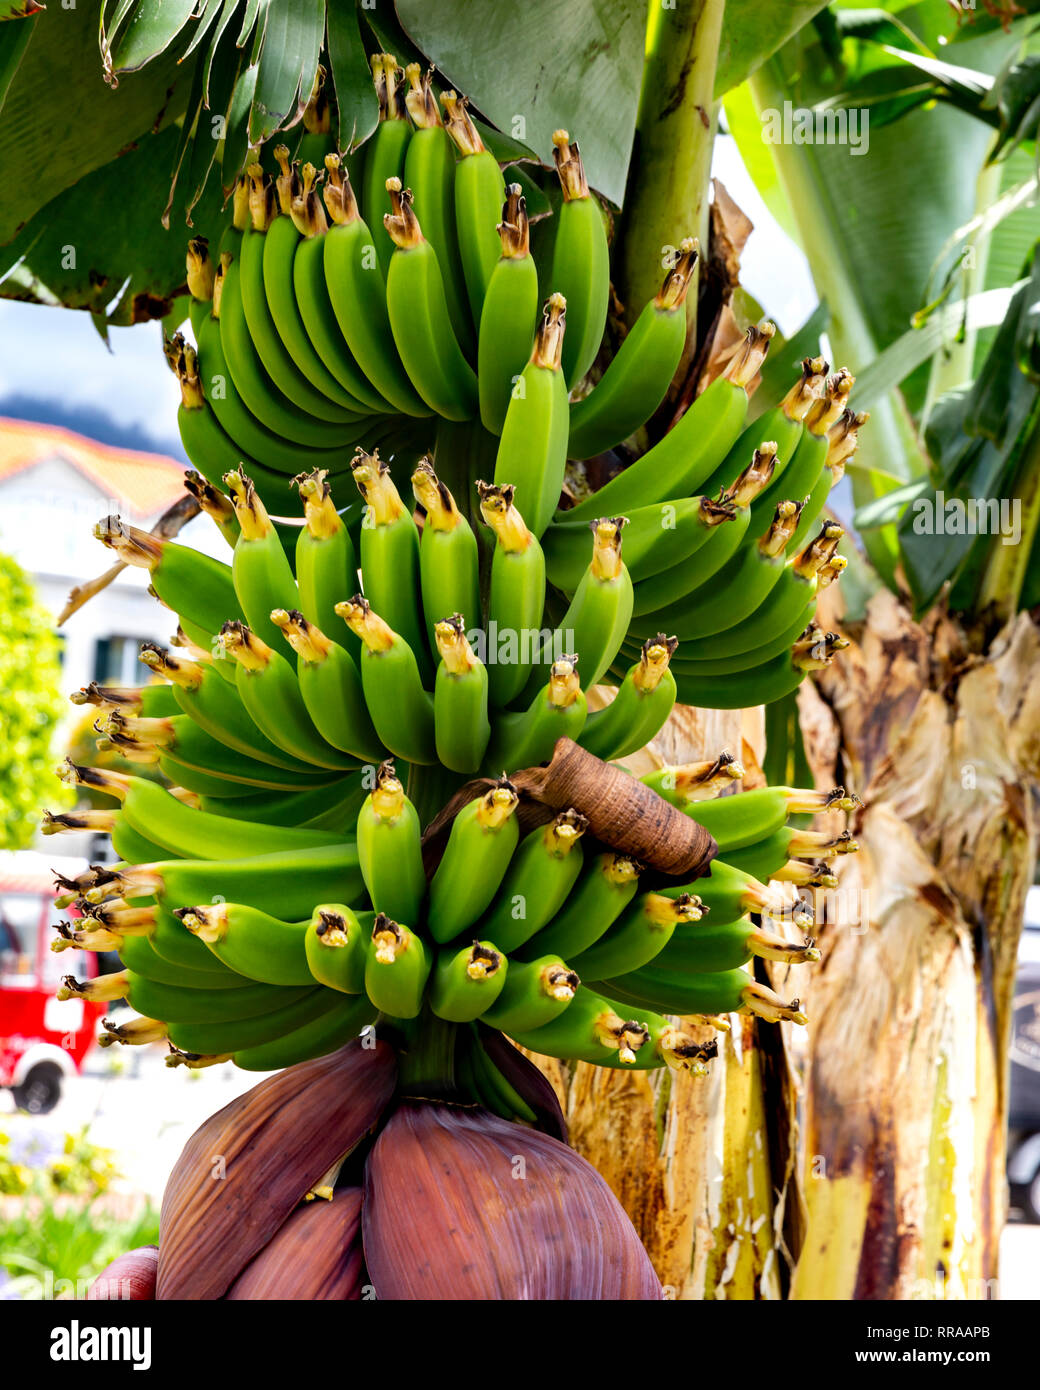 Banana plant with ripening fruit and flower, Funchal, Madeira, Portugal. - Stock Image